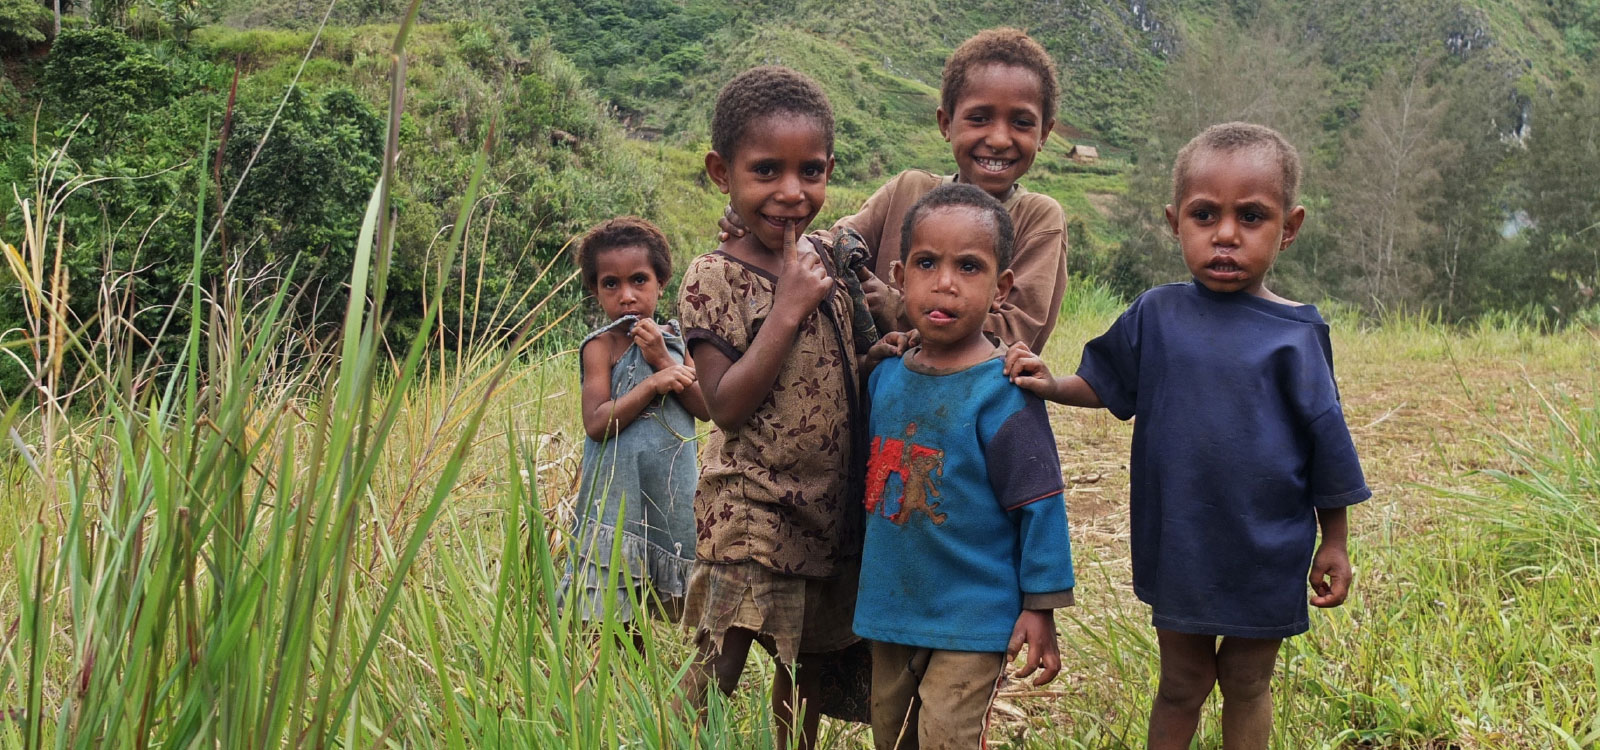 Kinder in Papua Neuguinea